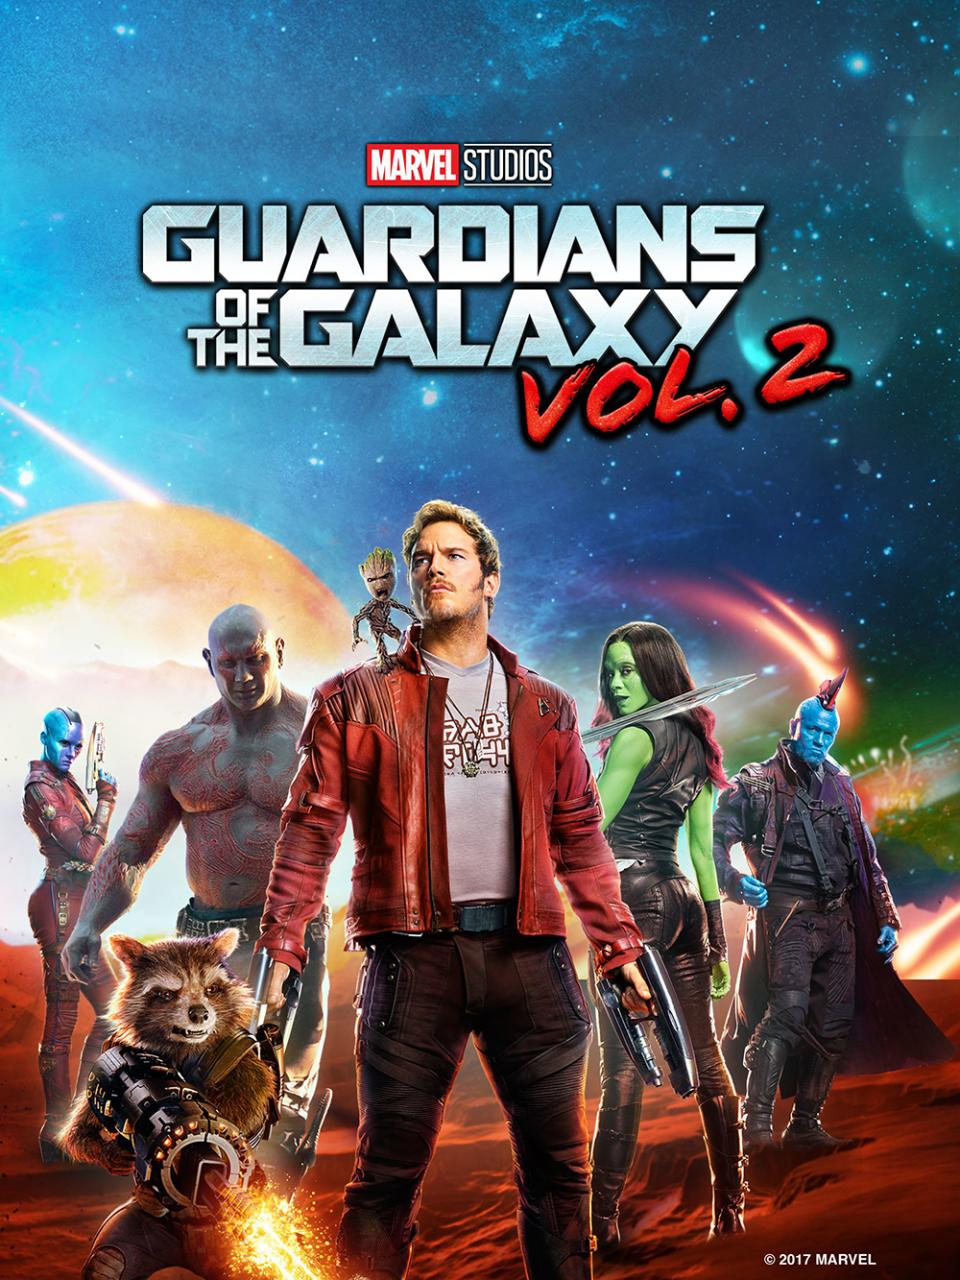 Guardians of the Galaxy Vol. 2 (2017) movie cover